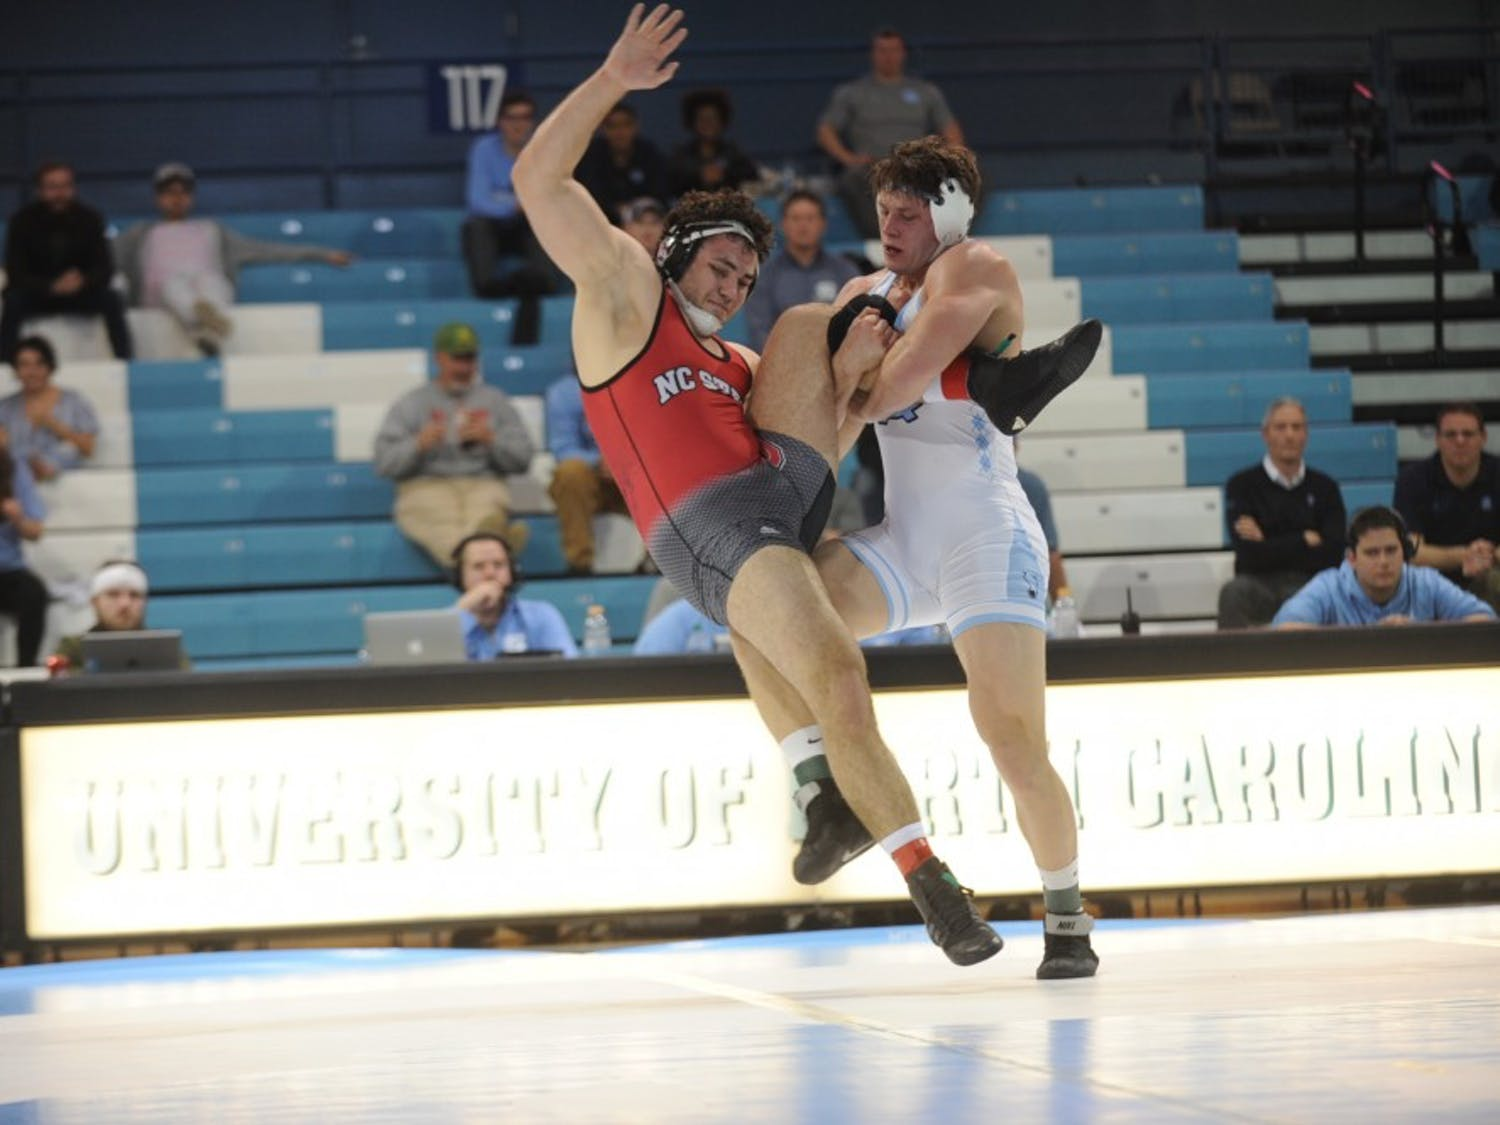 UNC redshirt senior Cory Daniel takes down NC State's Colin Lawler on Friday, Feb. 15, 2019. NC State won the wrestling match 20-14.